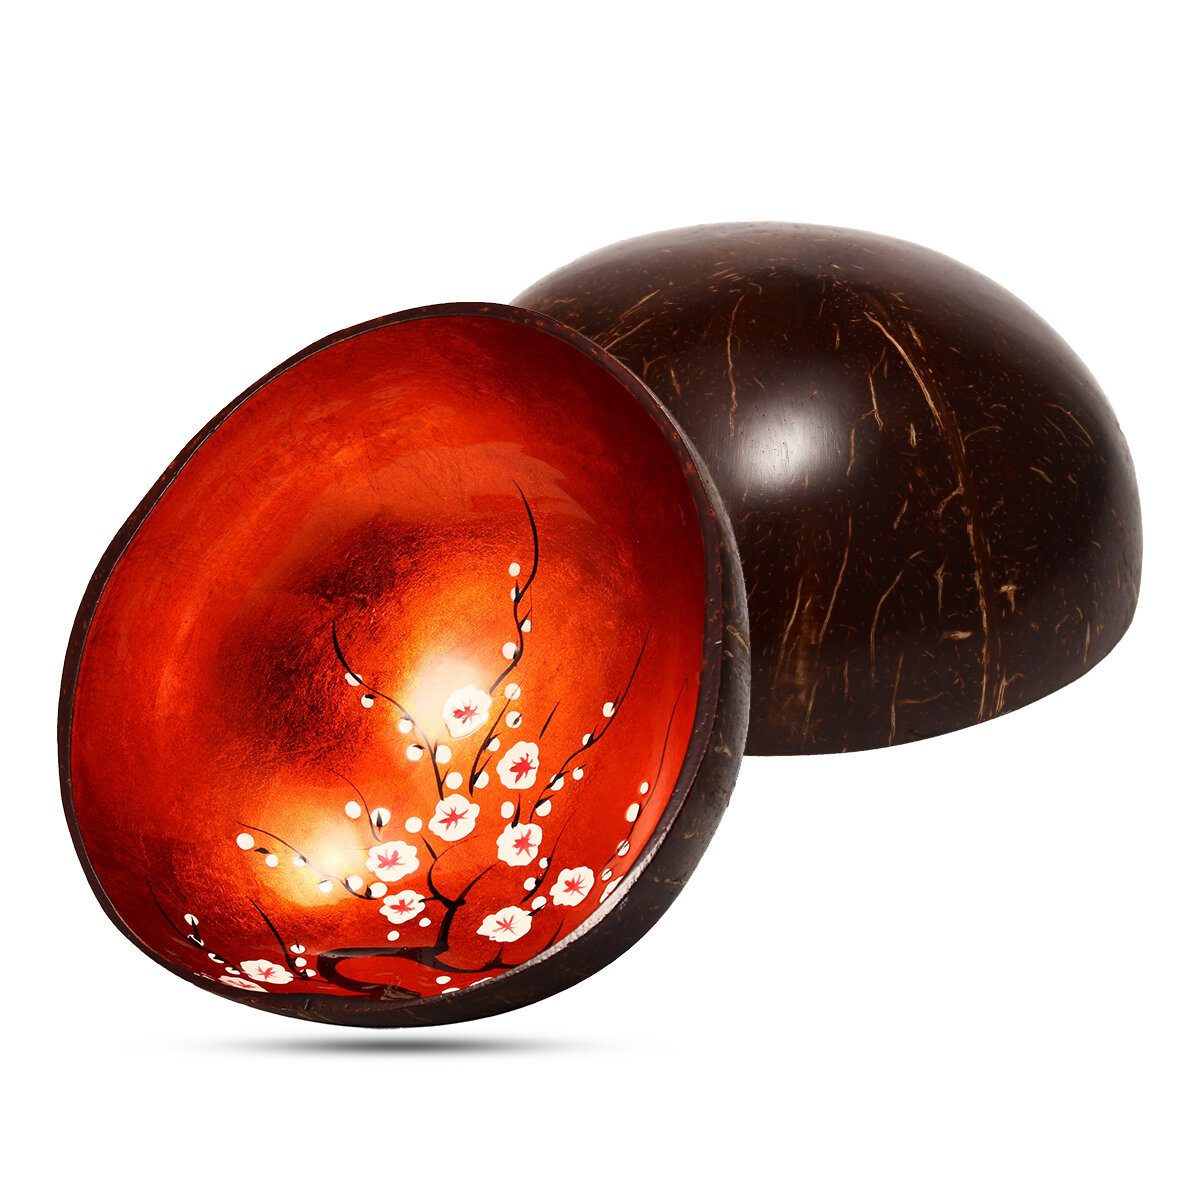 Natural Coconut Shell Bowl Handmade Paint Dishes Vintage Craft Home Decorations - 9